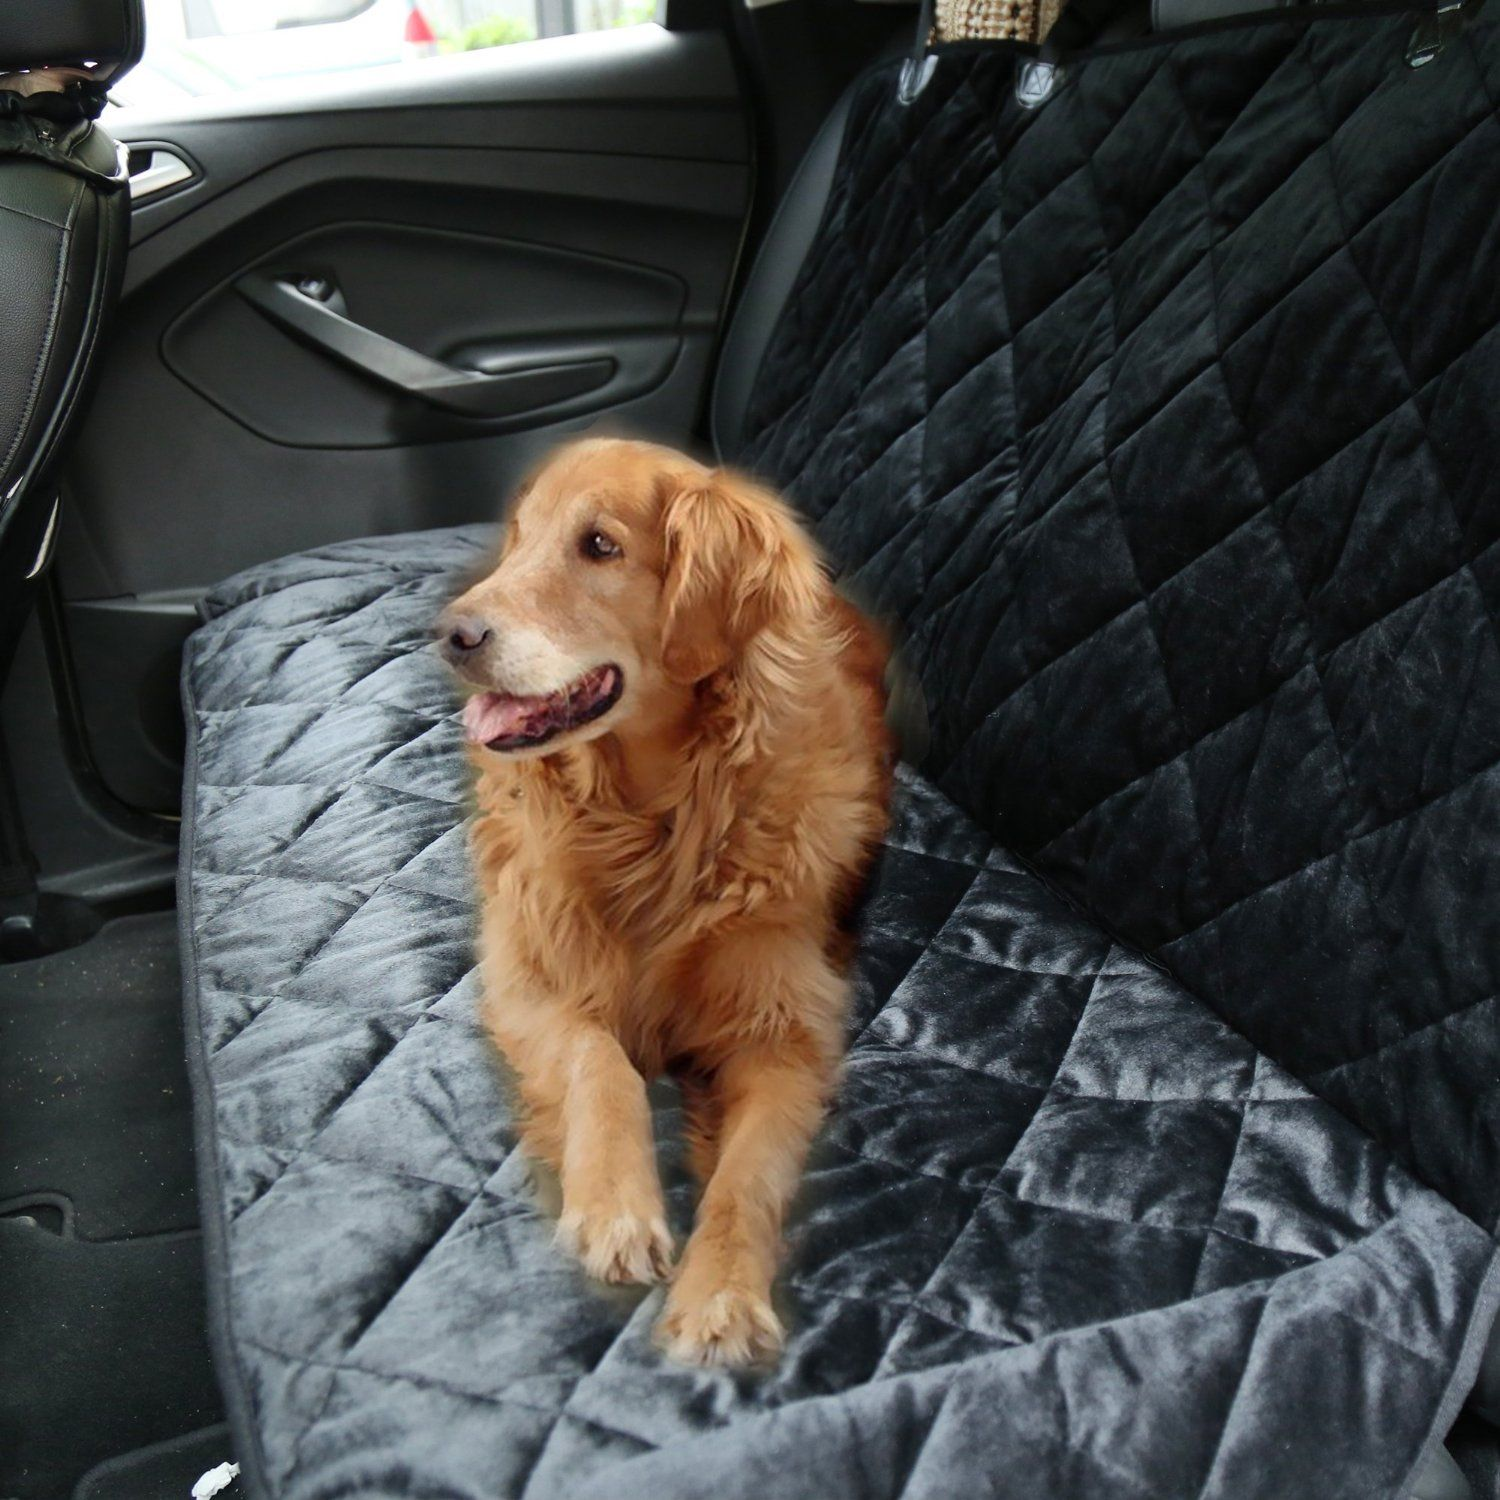 Homdox Waterproof Non-slip Padded Dog Seat Covers for Cars Trucks and SUVs Cozy Pet Seat Cover (Black Seat Cover): Amazon.co.uk: Pet Supplies